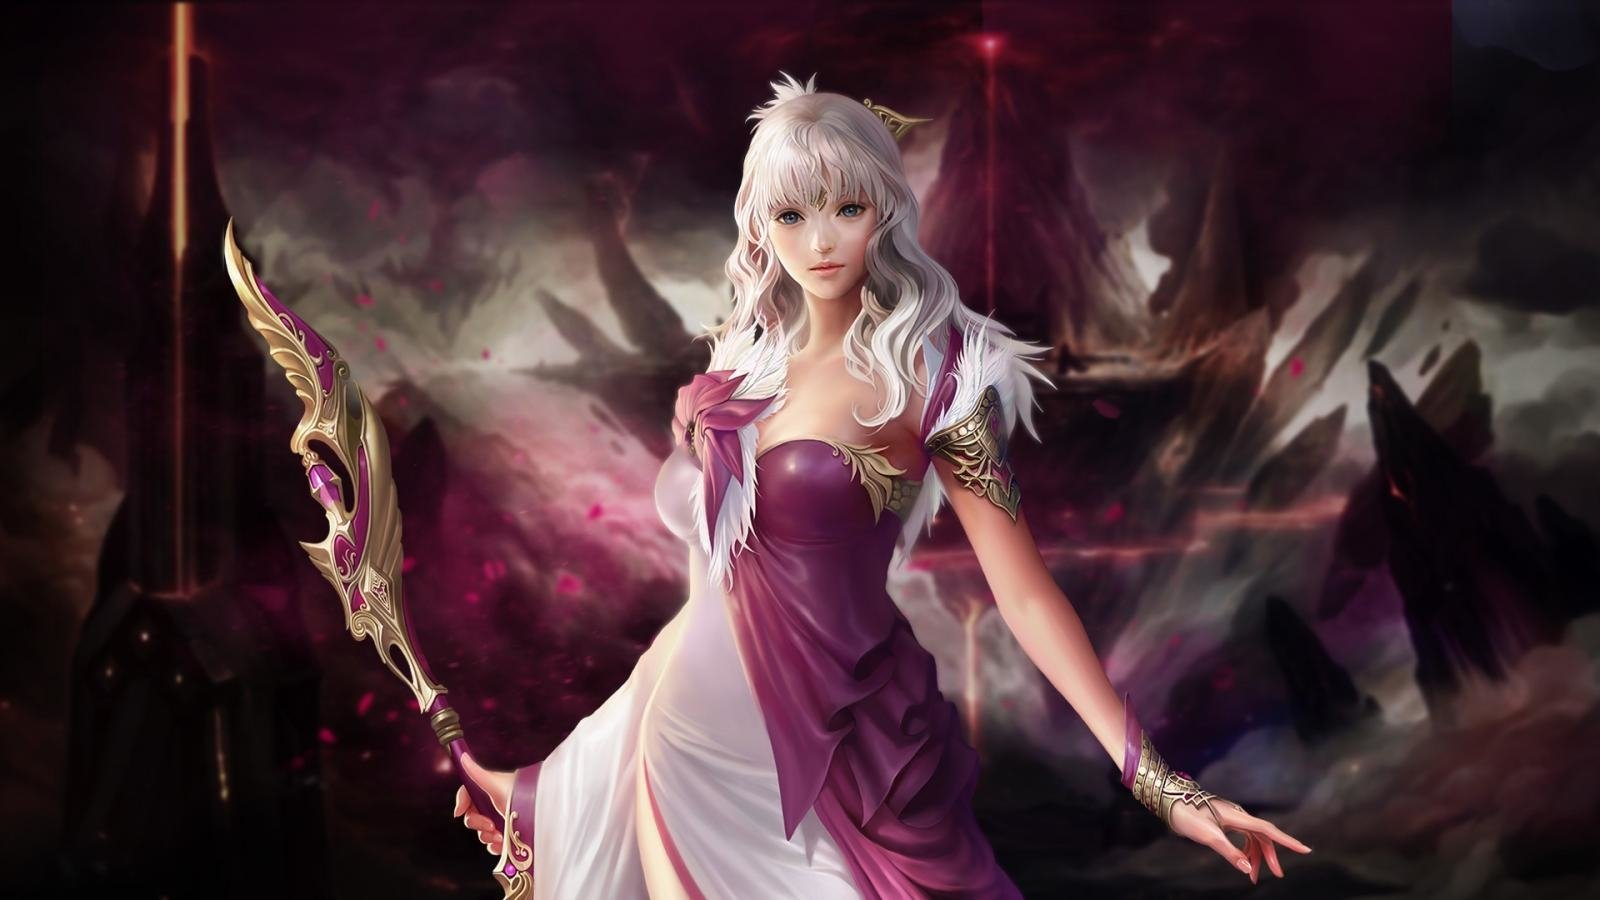 Fantasy - Witch  Staff Purple Sword White Hair Girl Woman Blue Eyes Sorceress Fantasy Wallpaper